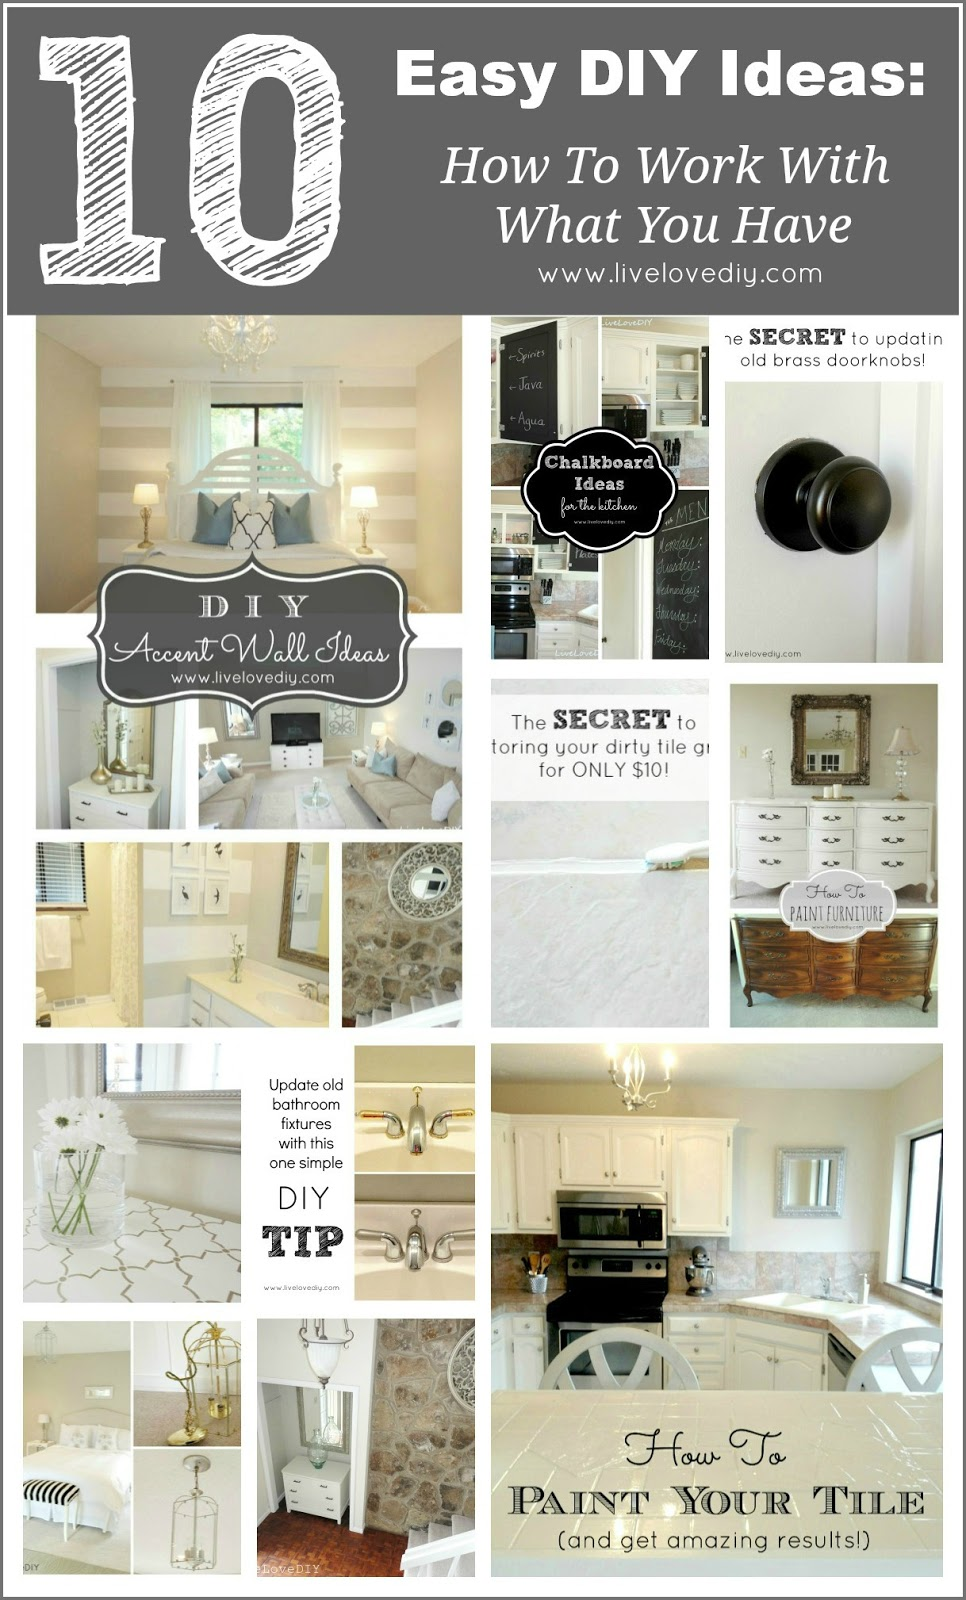 10 home improvement ideas how to make the most of what you already have livelovediy bloglovin. Black Bedroom Furniture Sets. Home Design Ideas